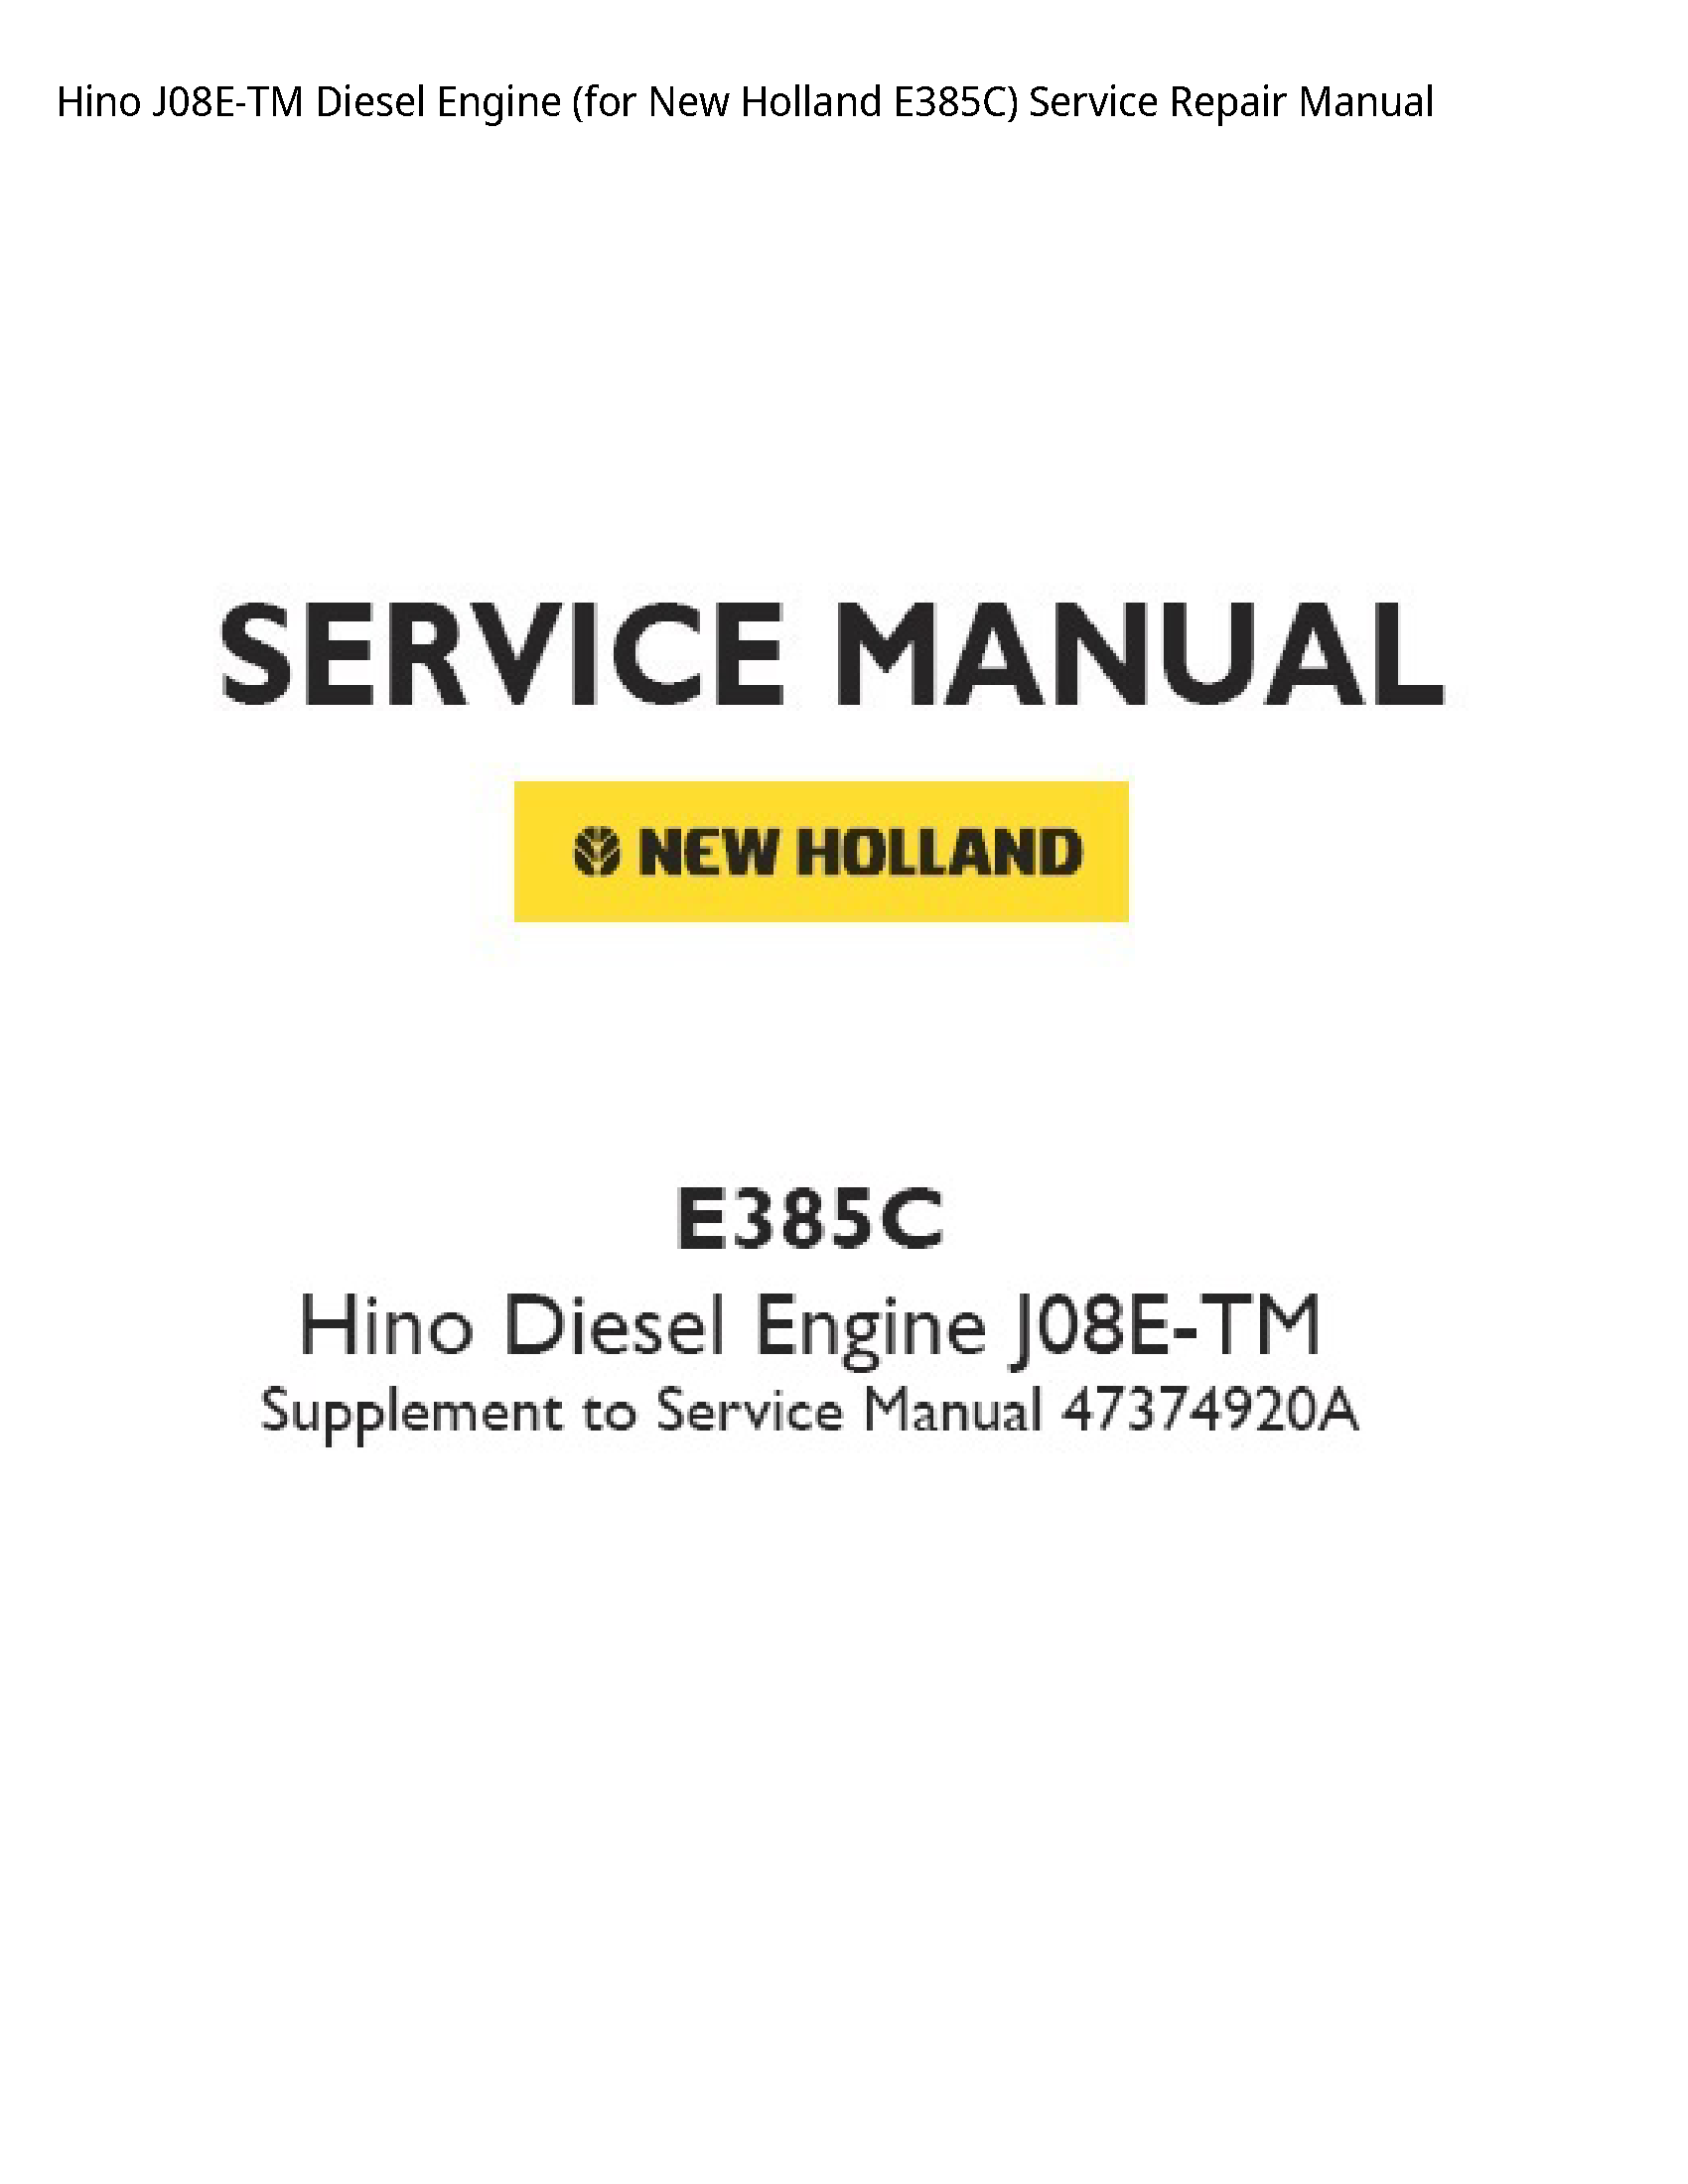 Hino J08E-TM Diesel Engine for New Holland manual